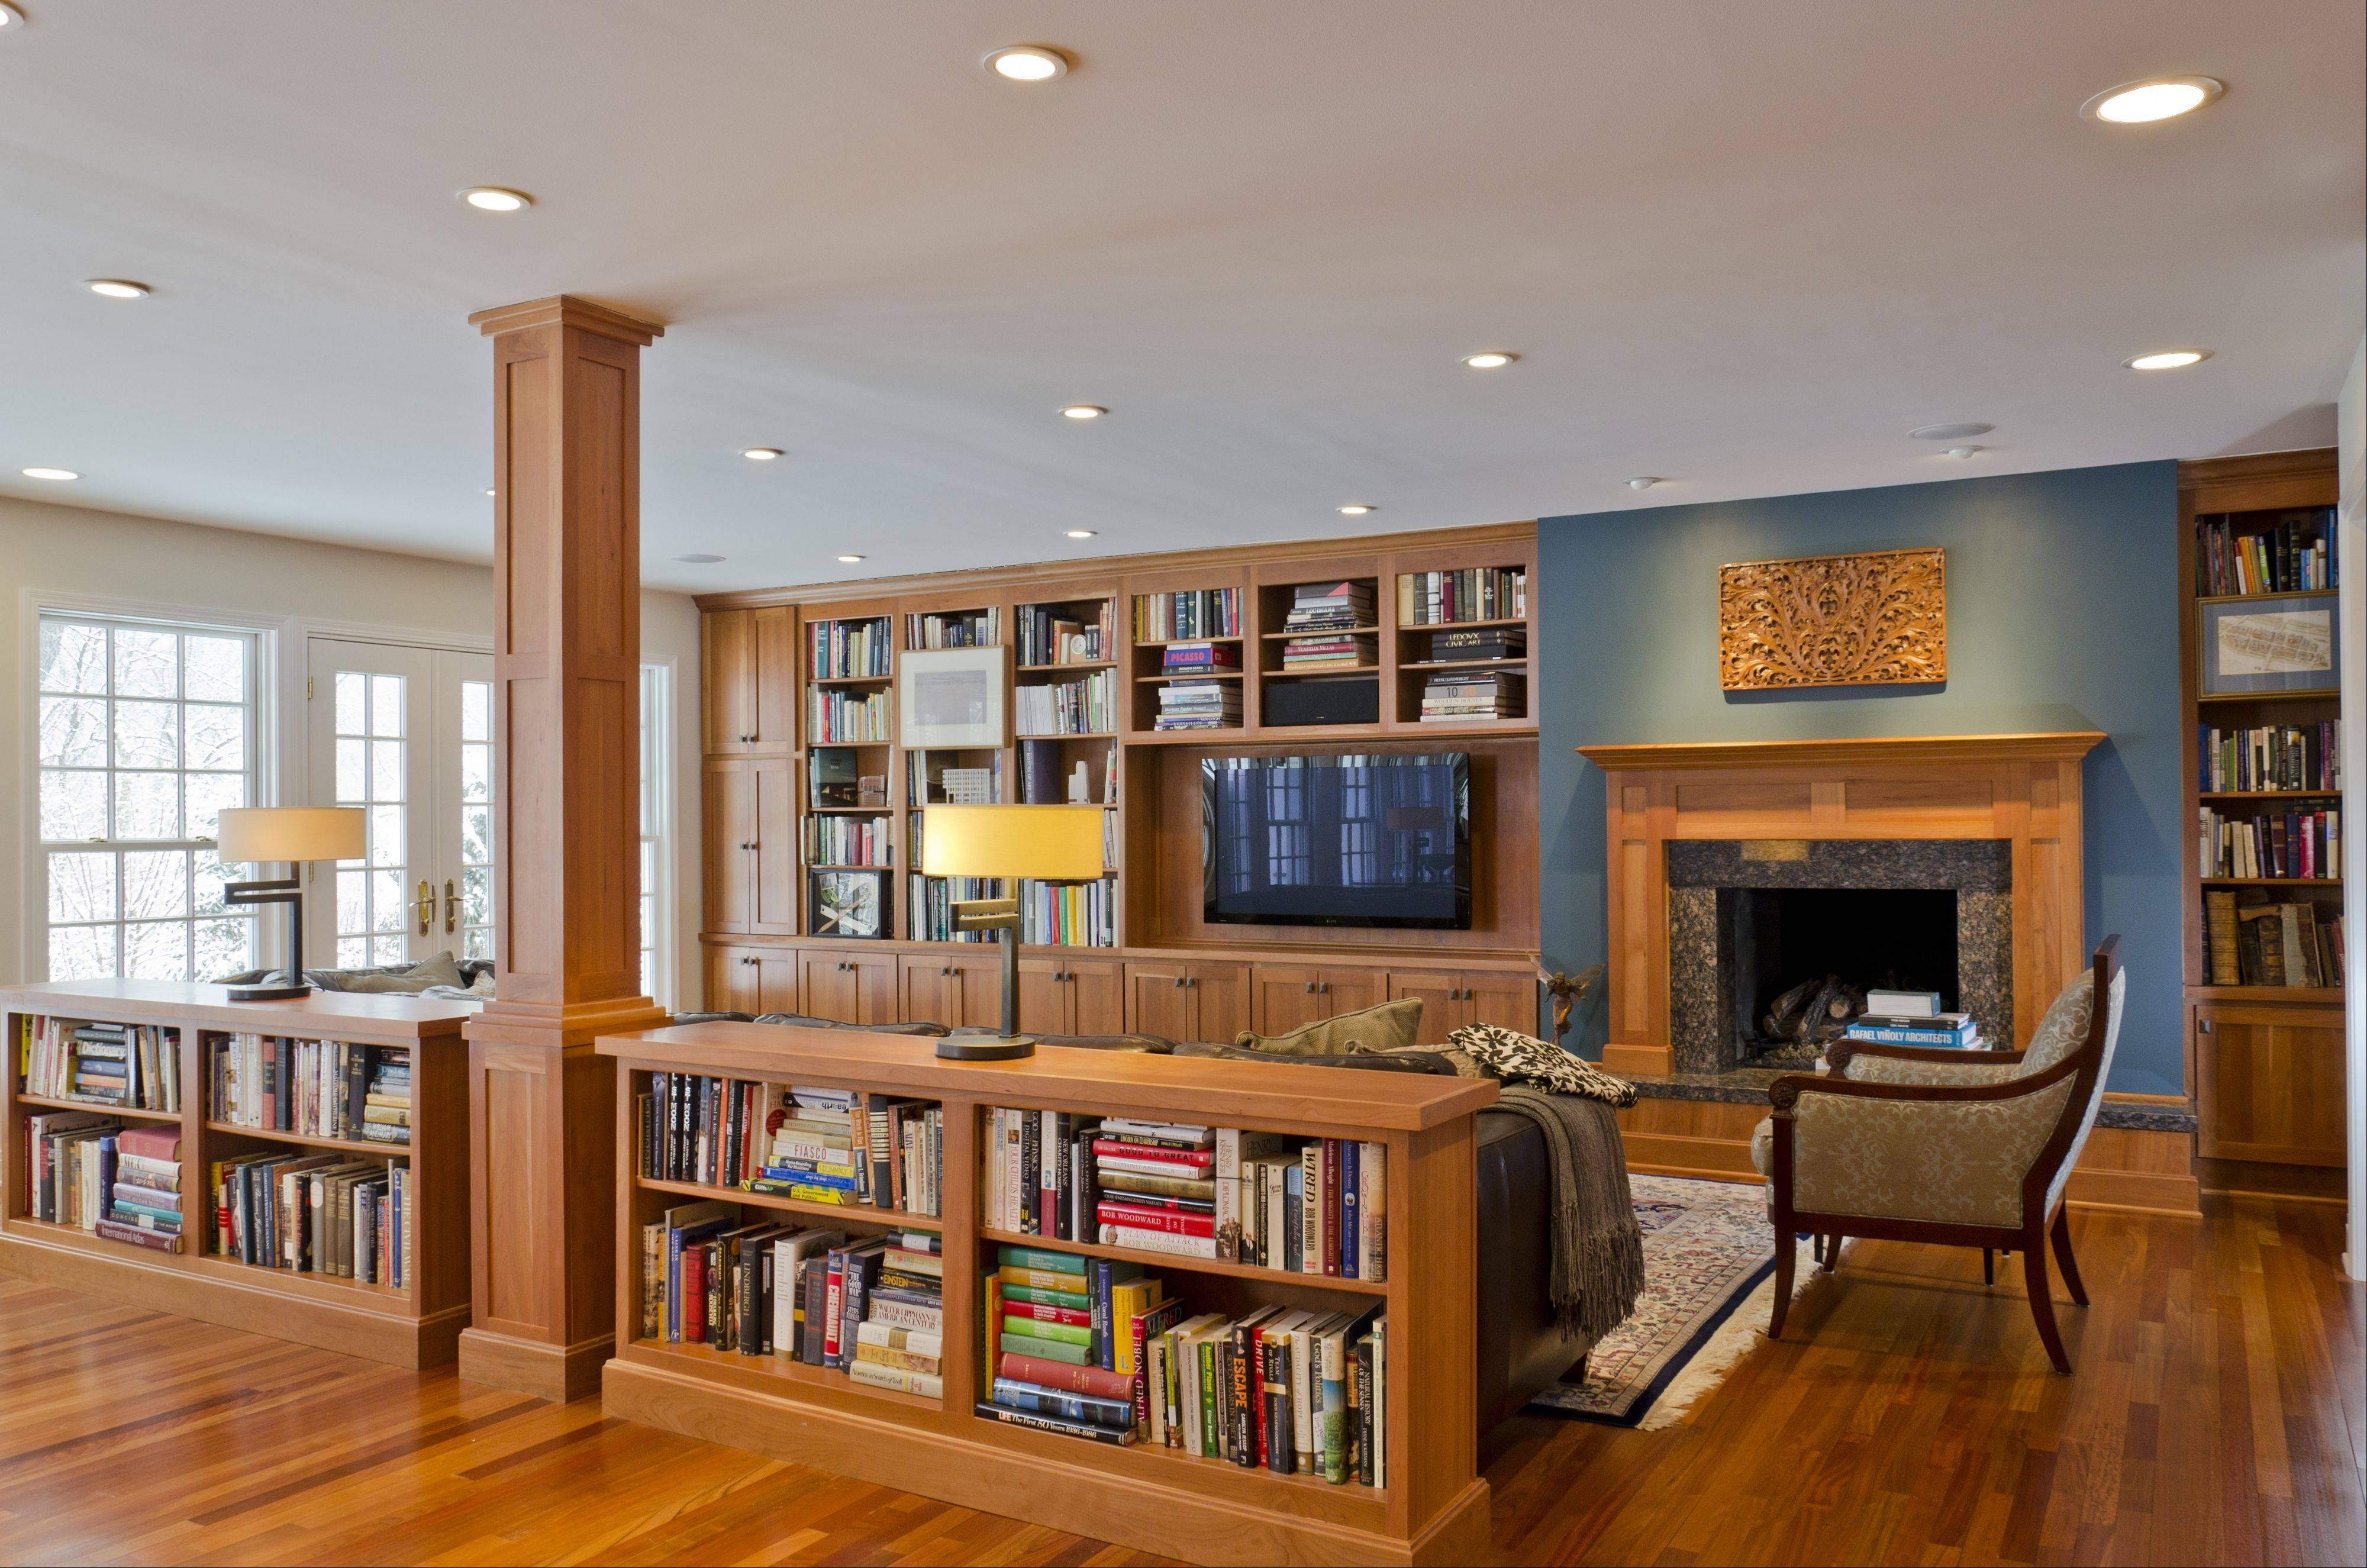 Bradford and Kent constructed this family room addition onto an existing home.